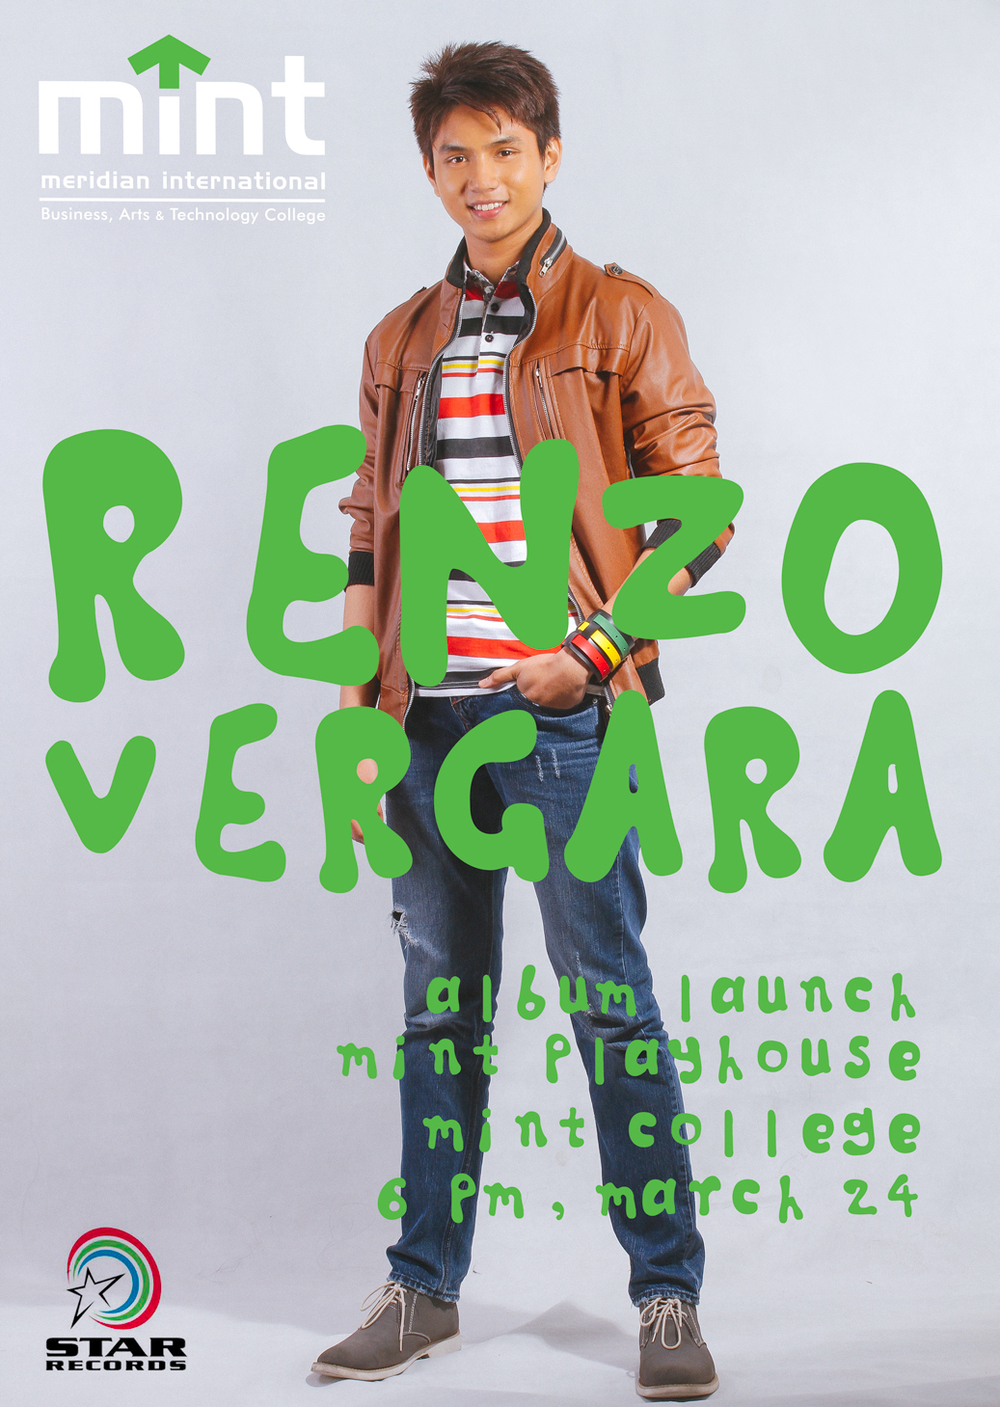 MINT MBM freshman student and Star Records recording artist Renzo Vergara is launching his 1st self-titled album today here at MINT College. We are honored and proud to have you here at MINT College. See you all tonight, here at MINT College, 6pm.   #minstchool     #mintcollege     #renzovergara  #mintmbm     #mbm     #starrecords